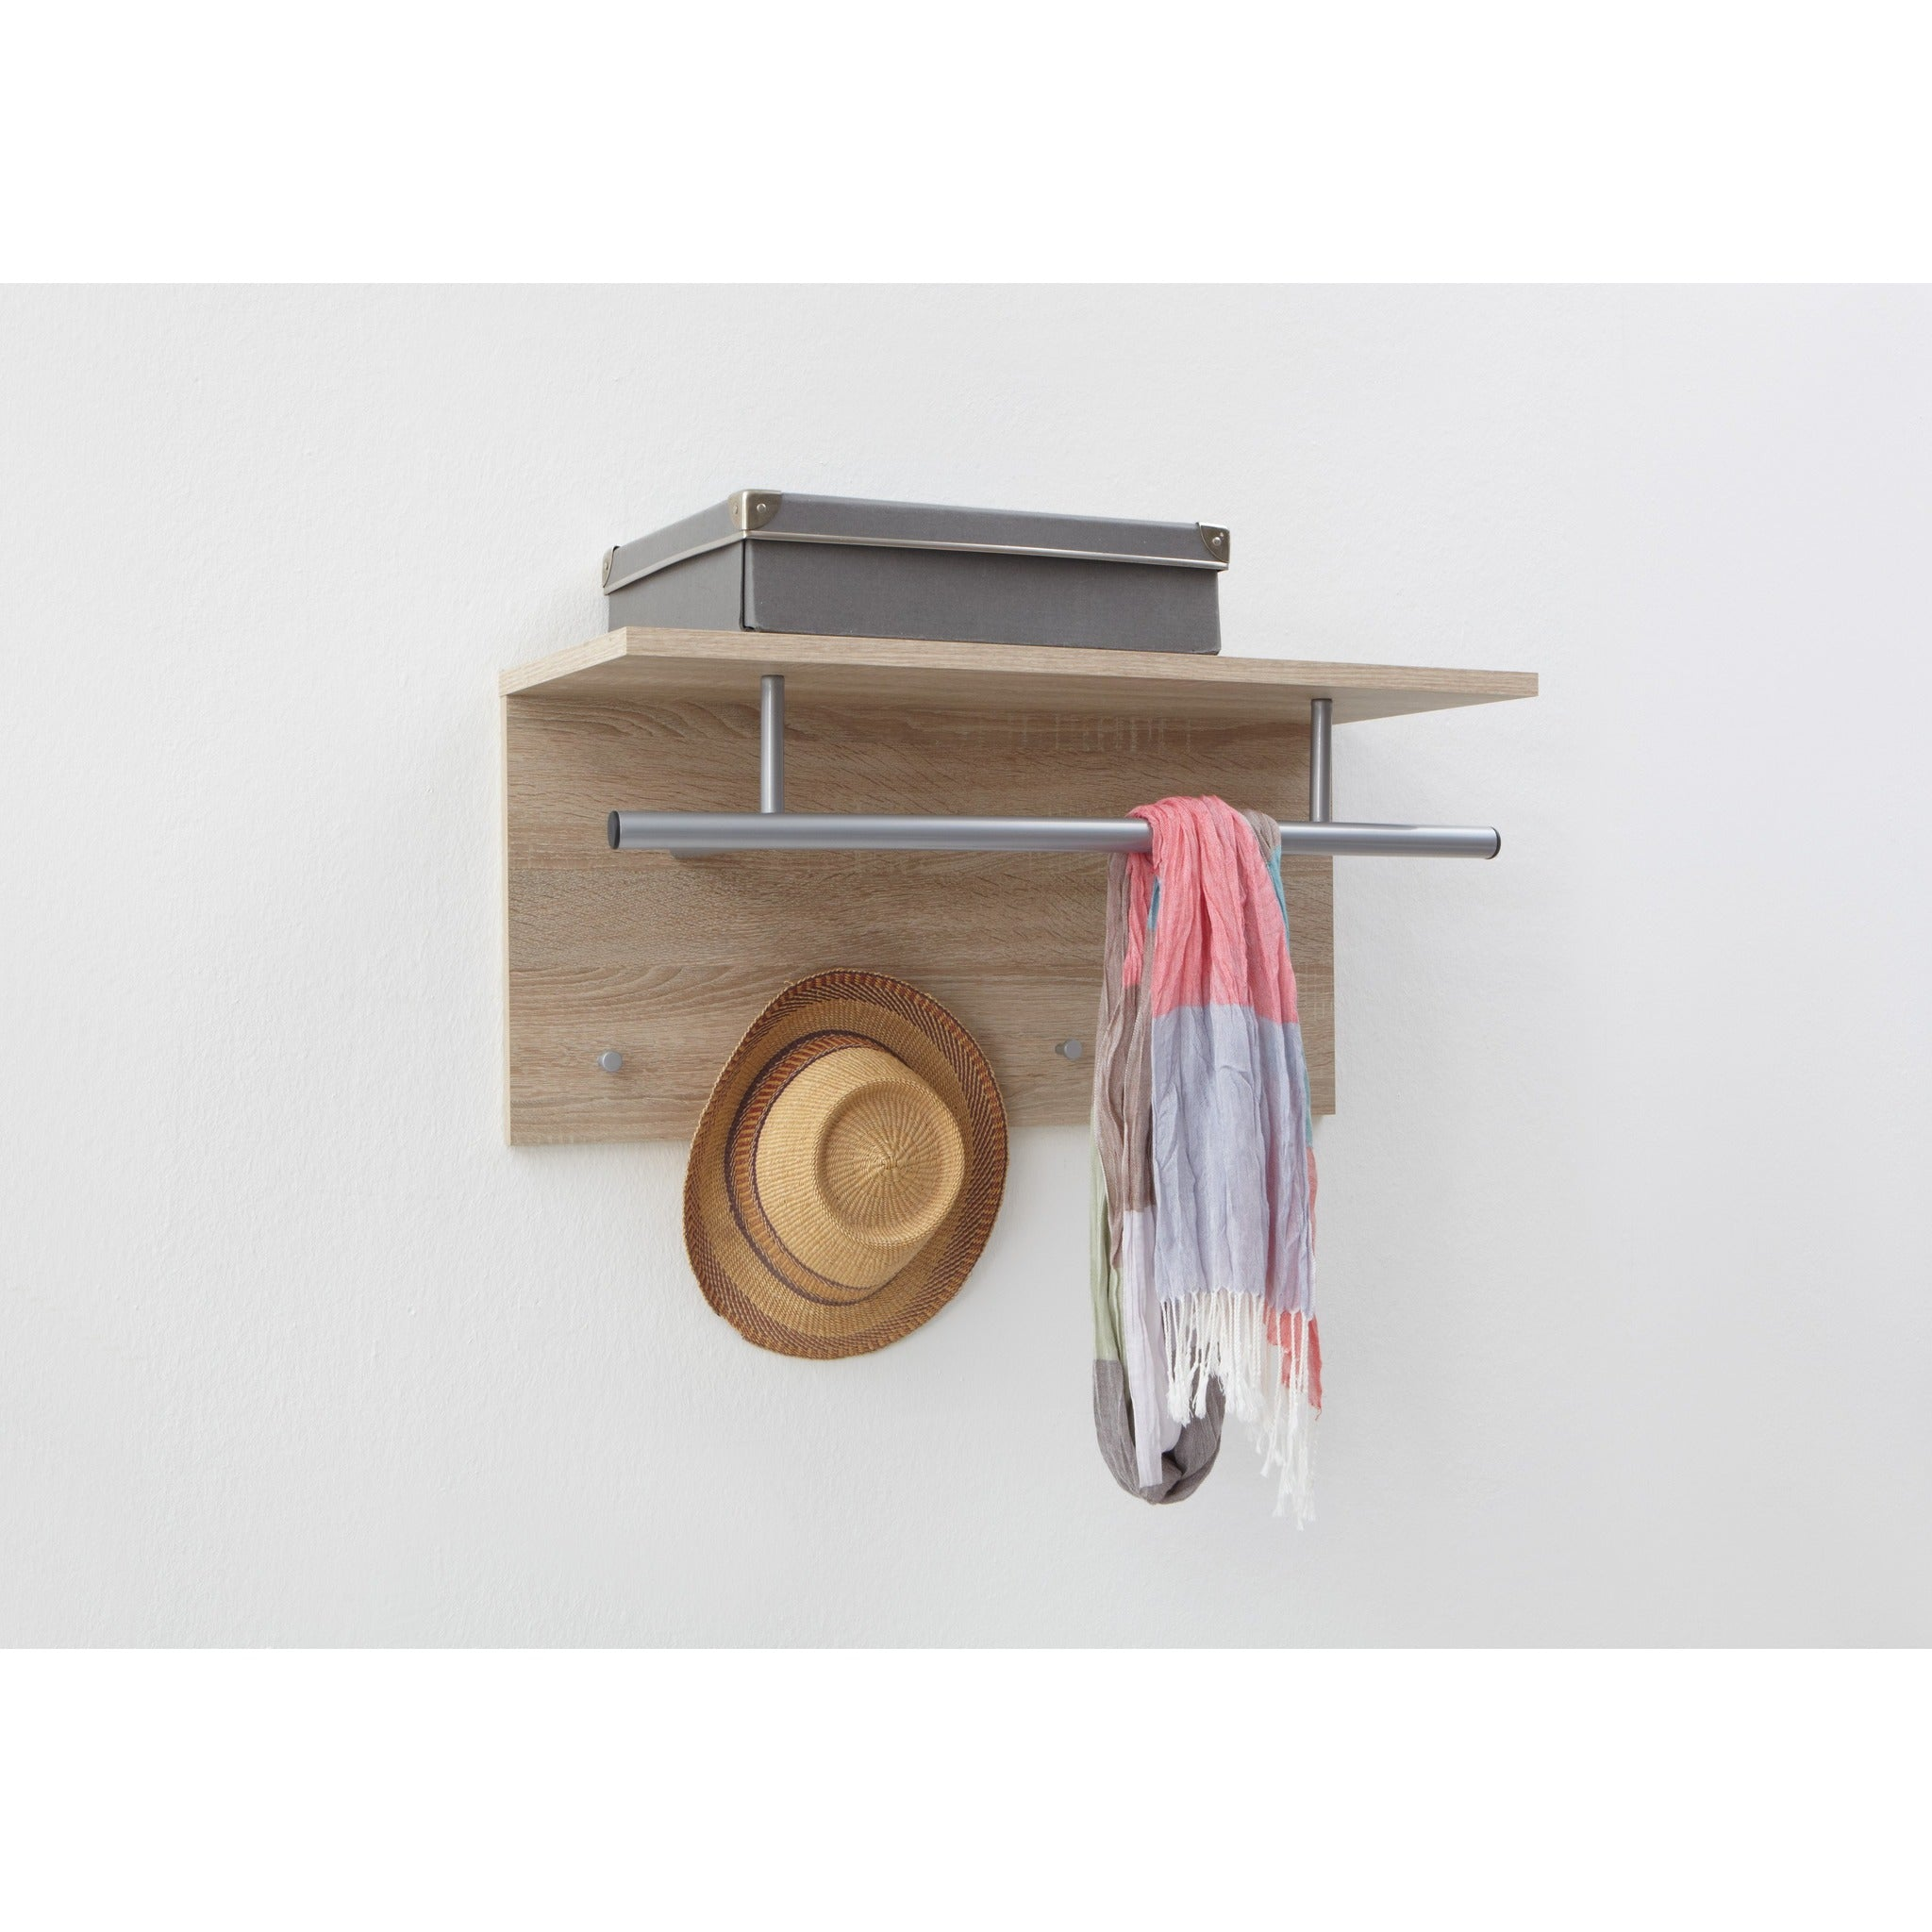 shelves zoom shelf click racks accessories home and a with to for here picture bigger wall hooks hover thickbox bloom bliss grey stands ltd